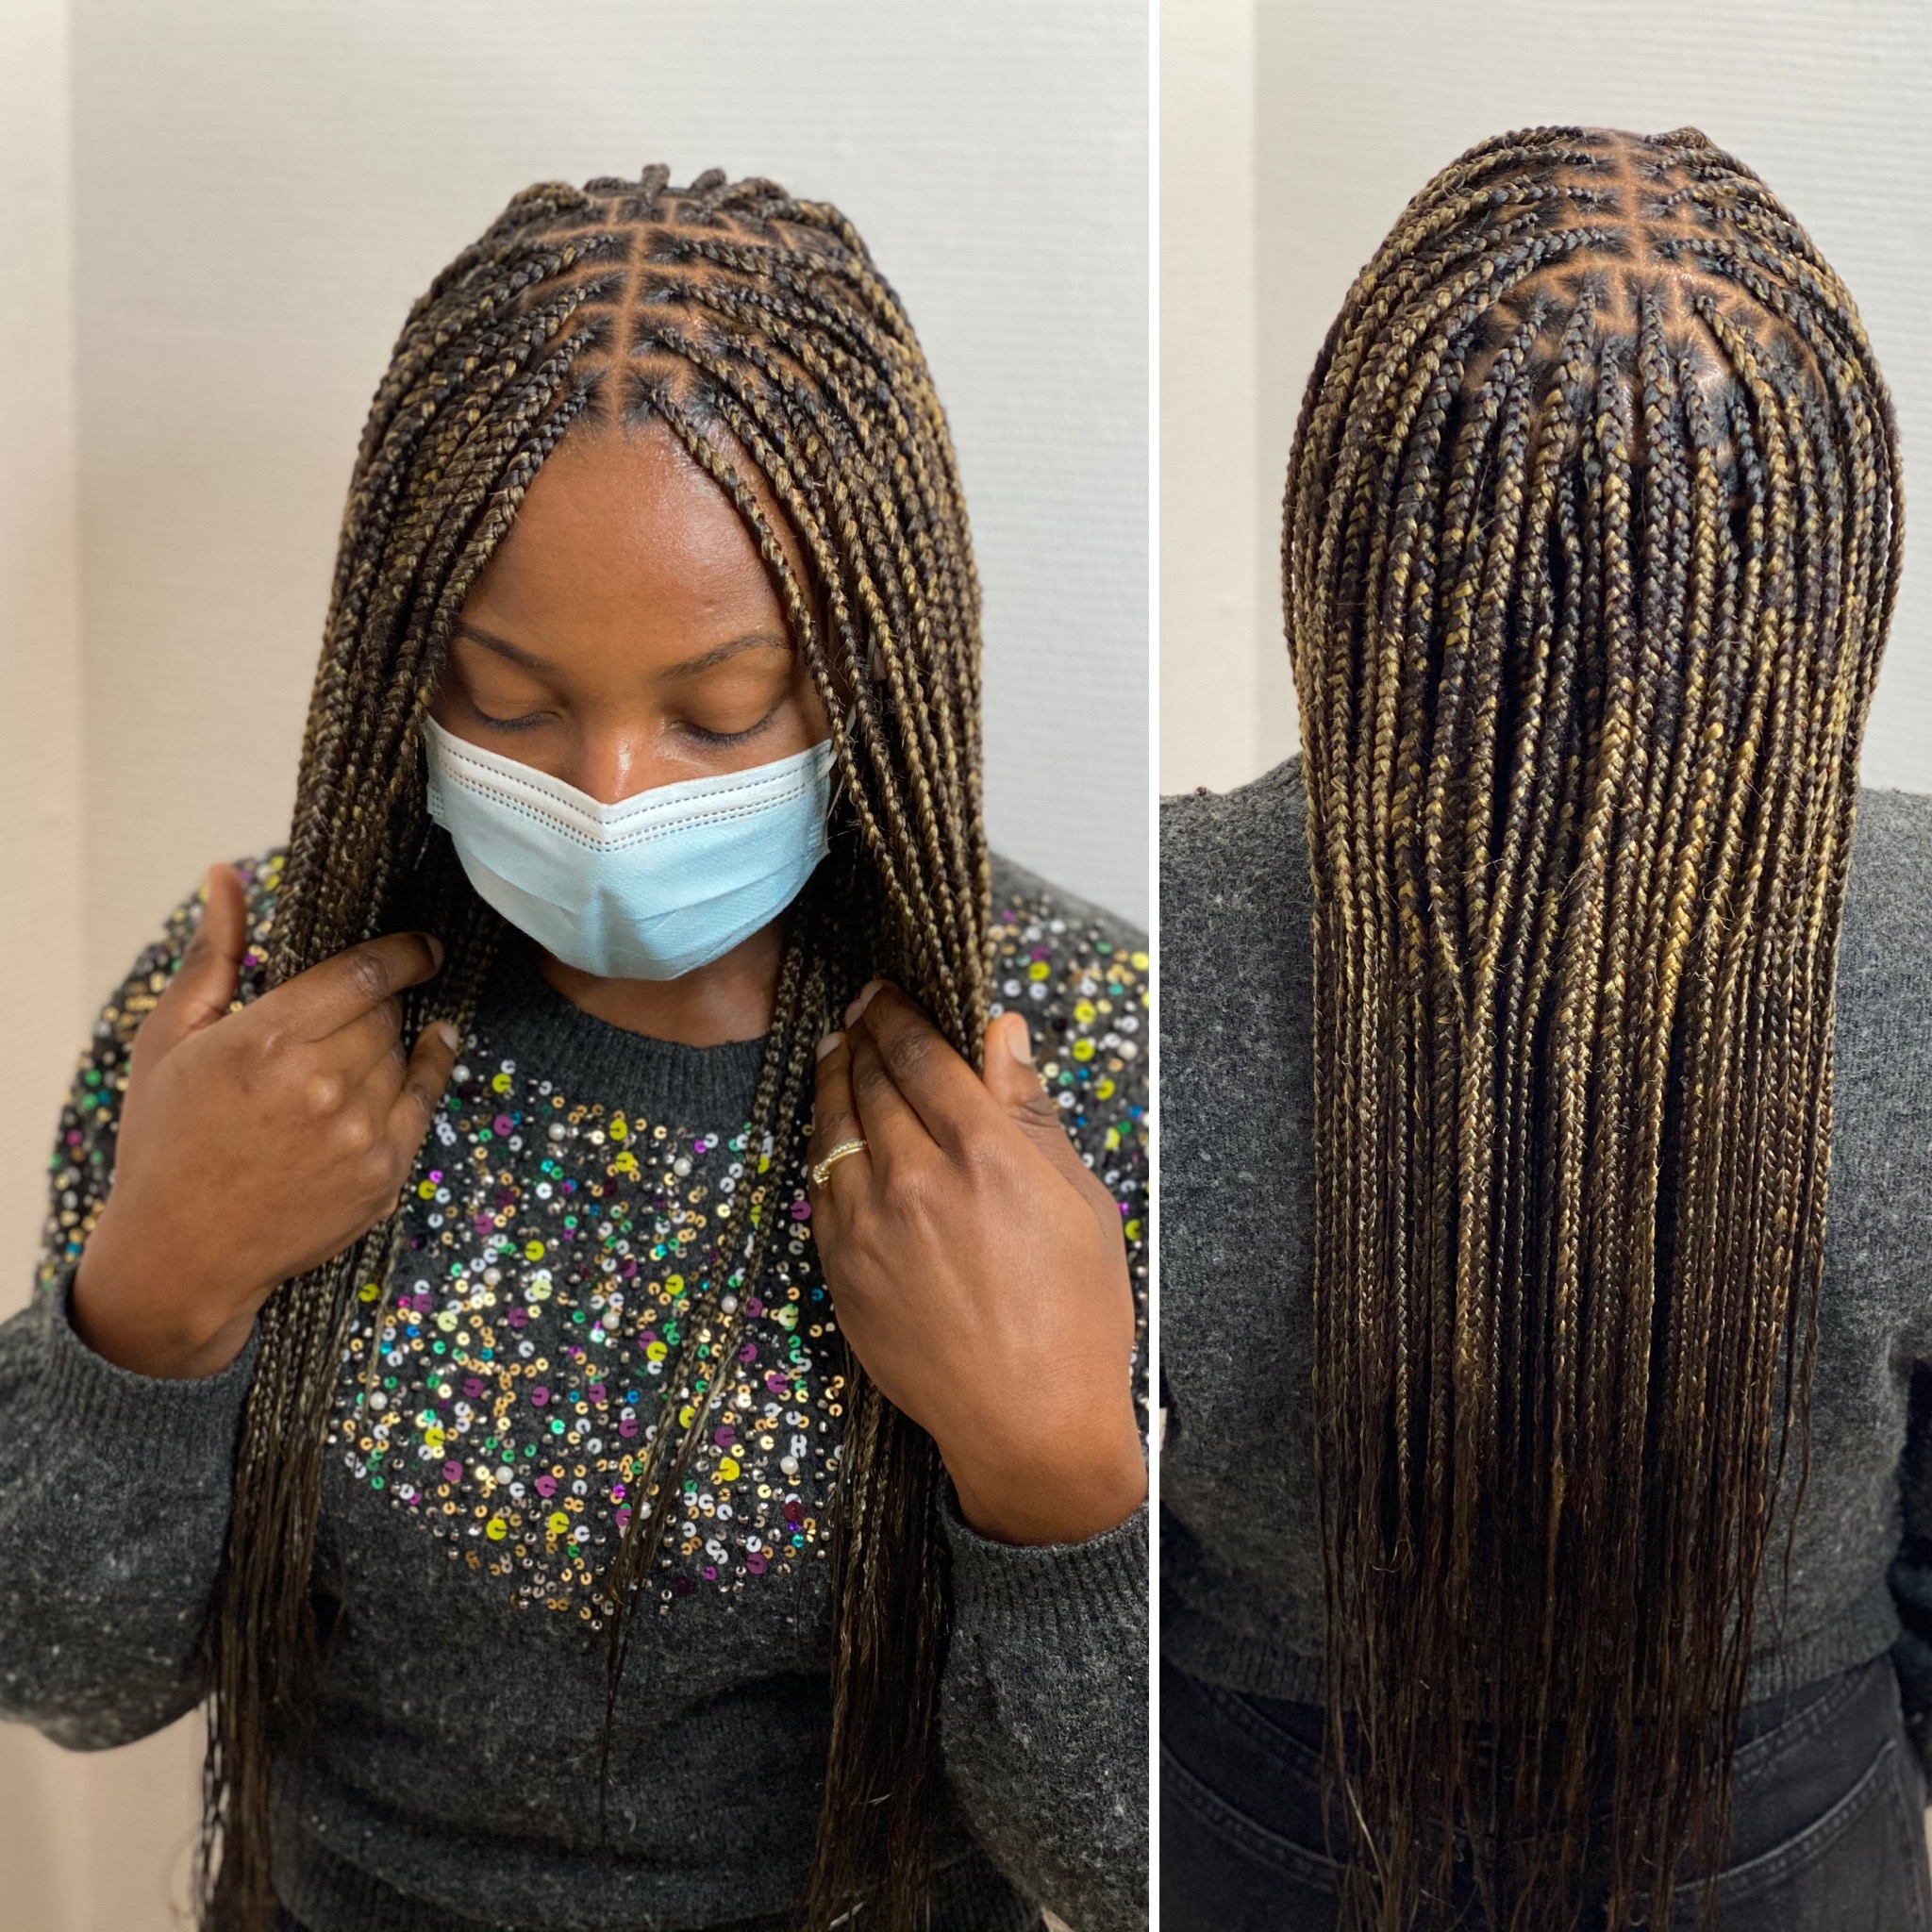 salon de coiffure afro tresse tresses box braids crochet braids vanilles tissages paris 75 77 78 91 92 93 94 95 PHZEBBVS